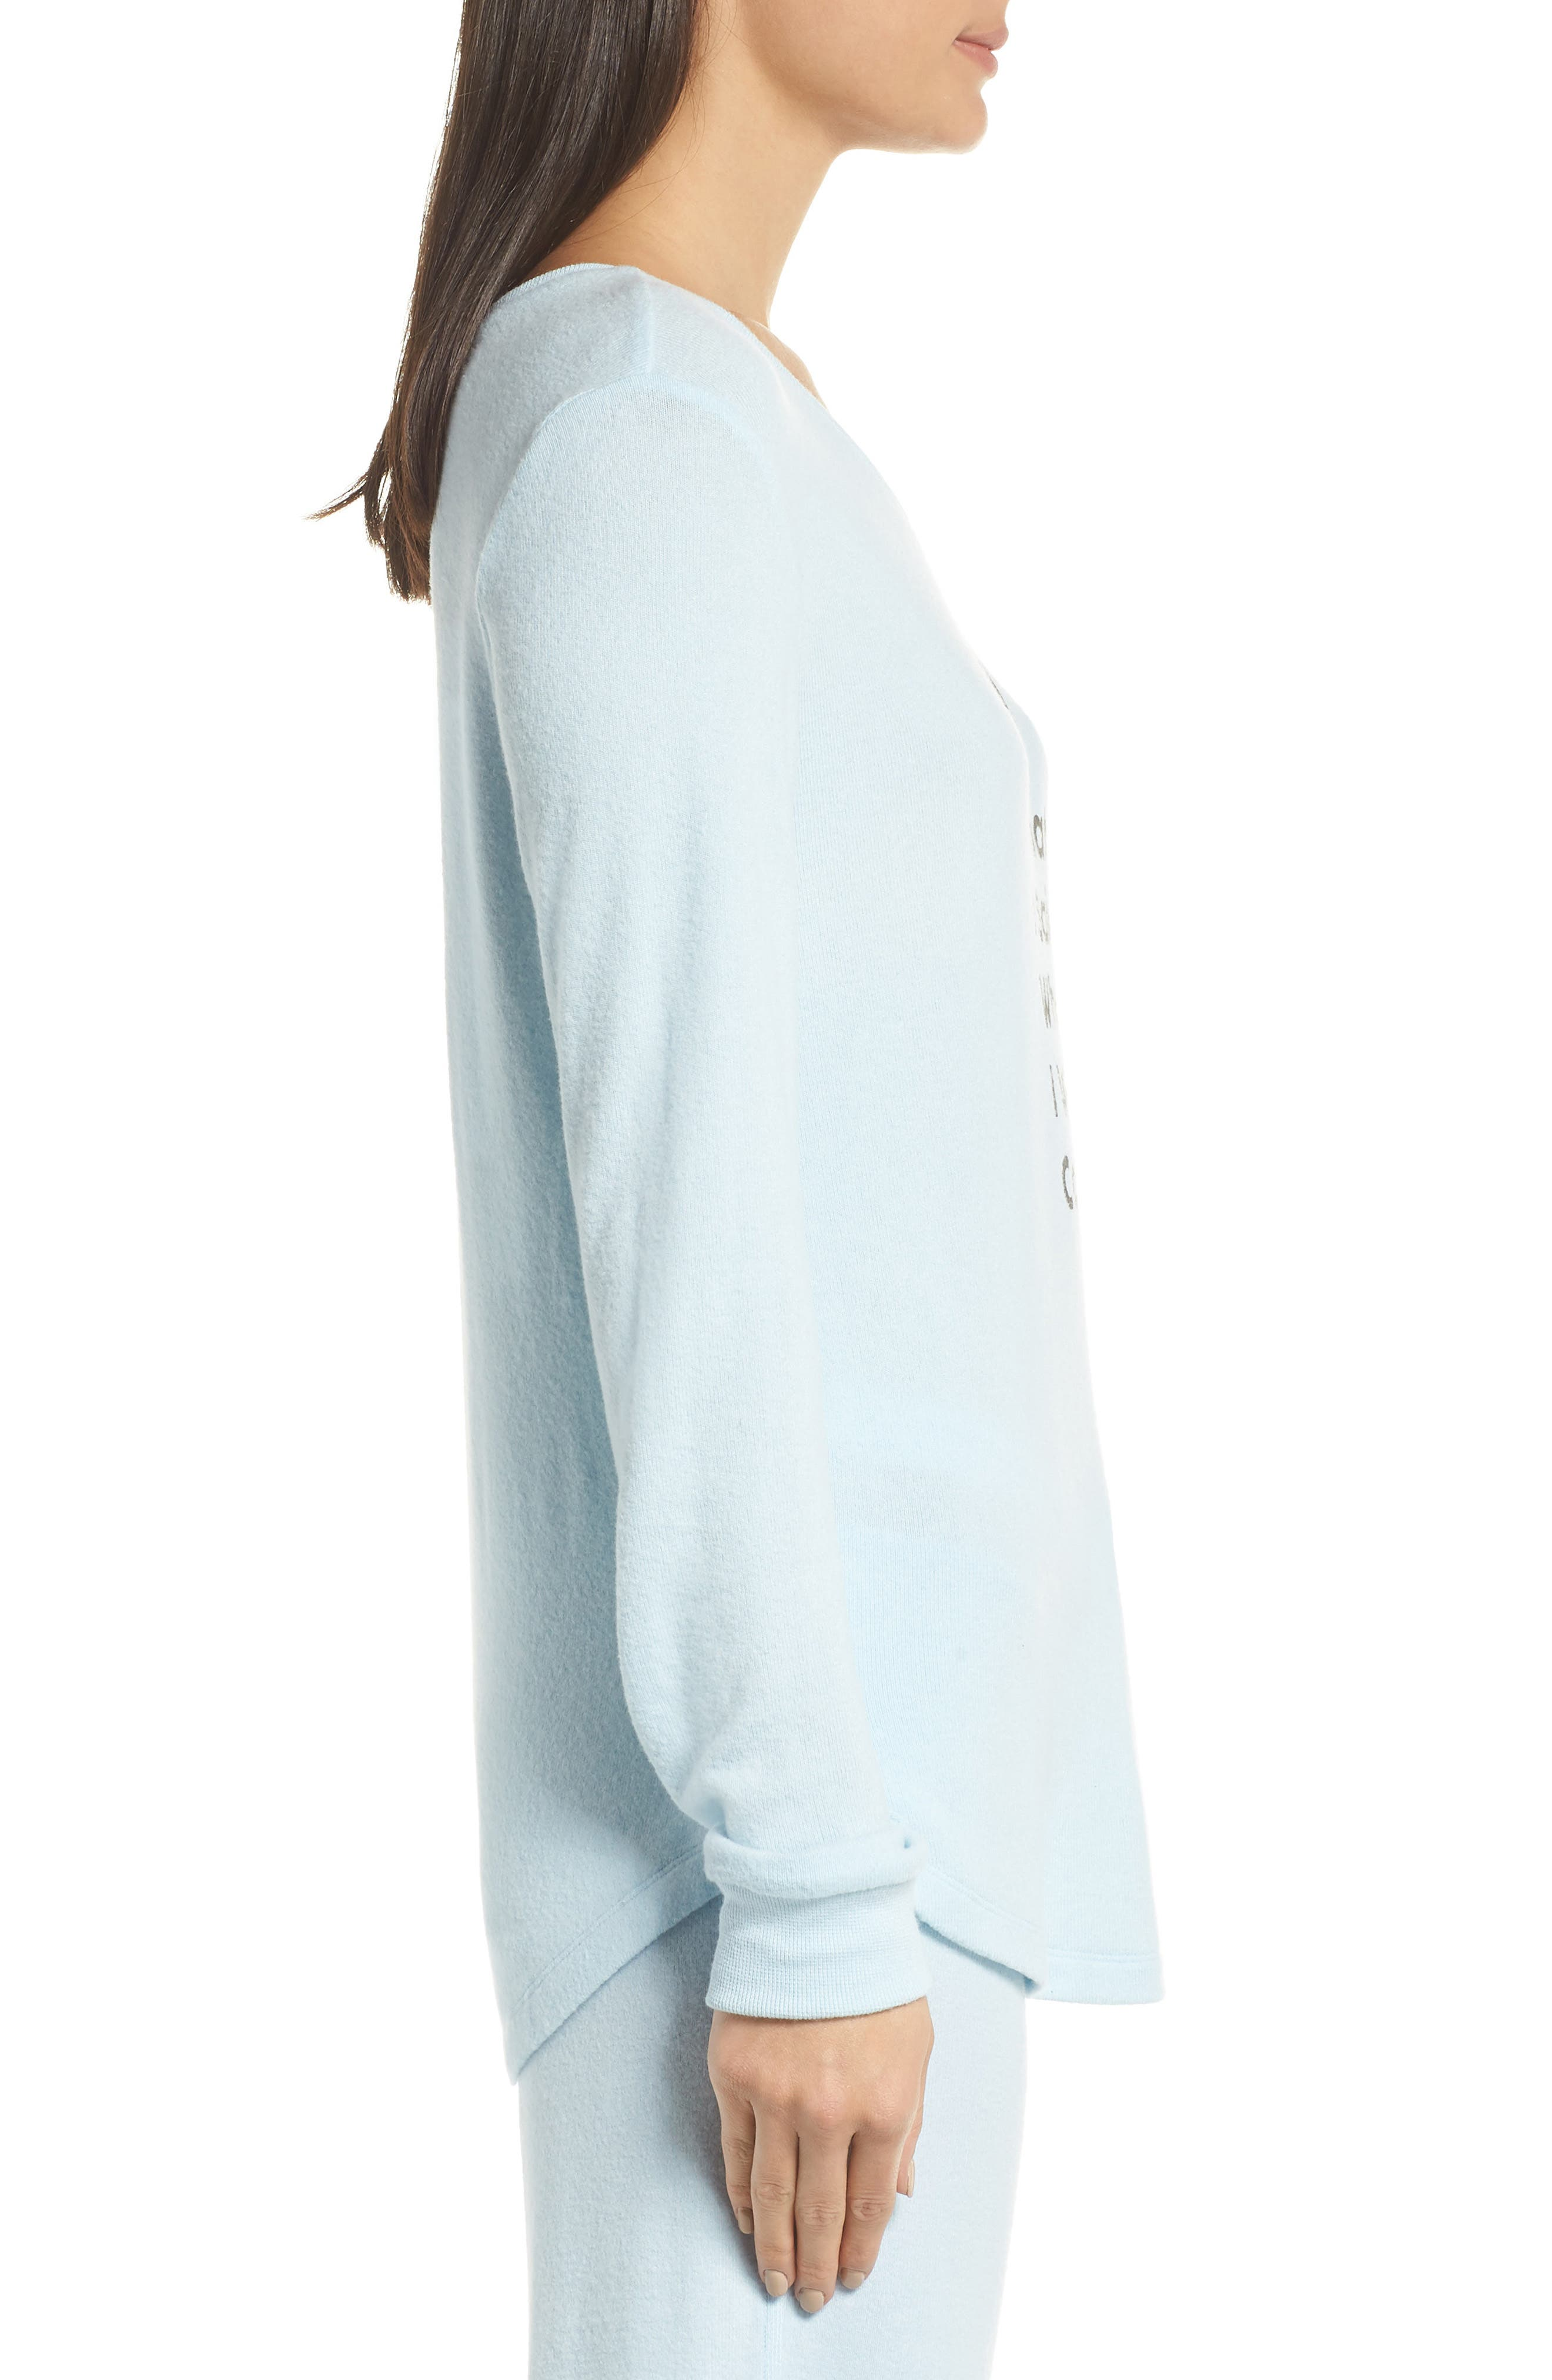 Too Cool Pullover,                             Alternate thumbnail 3, color,                             BLUE OMPHALODES